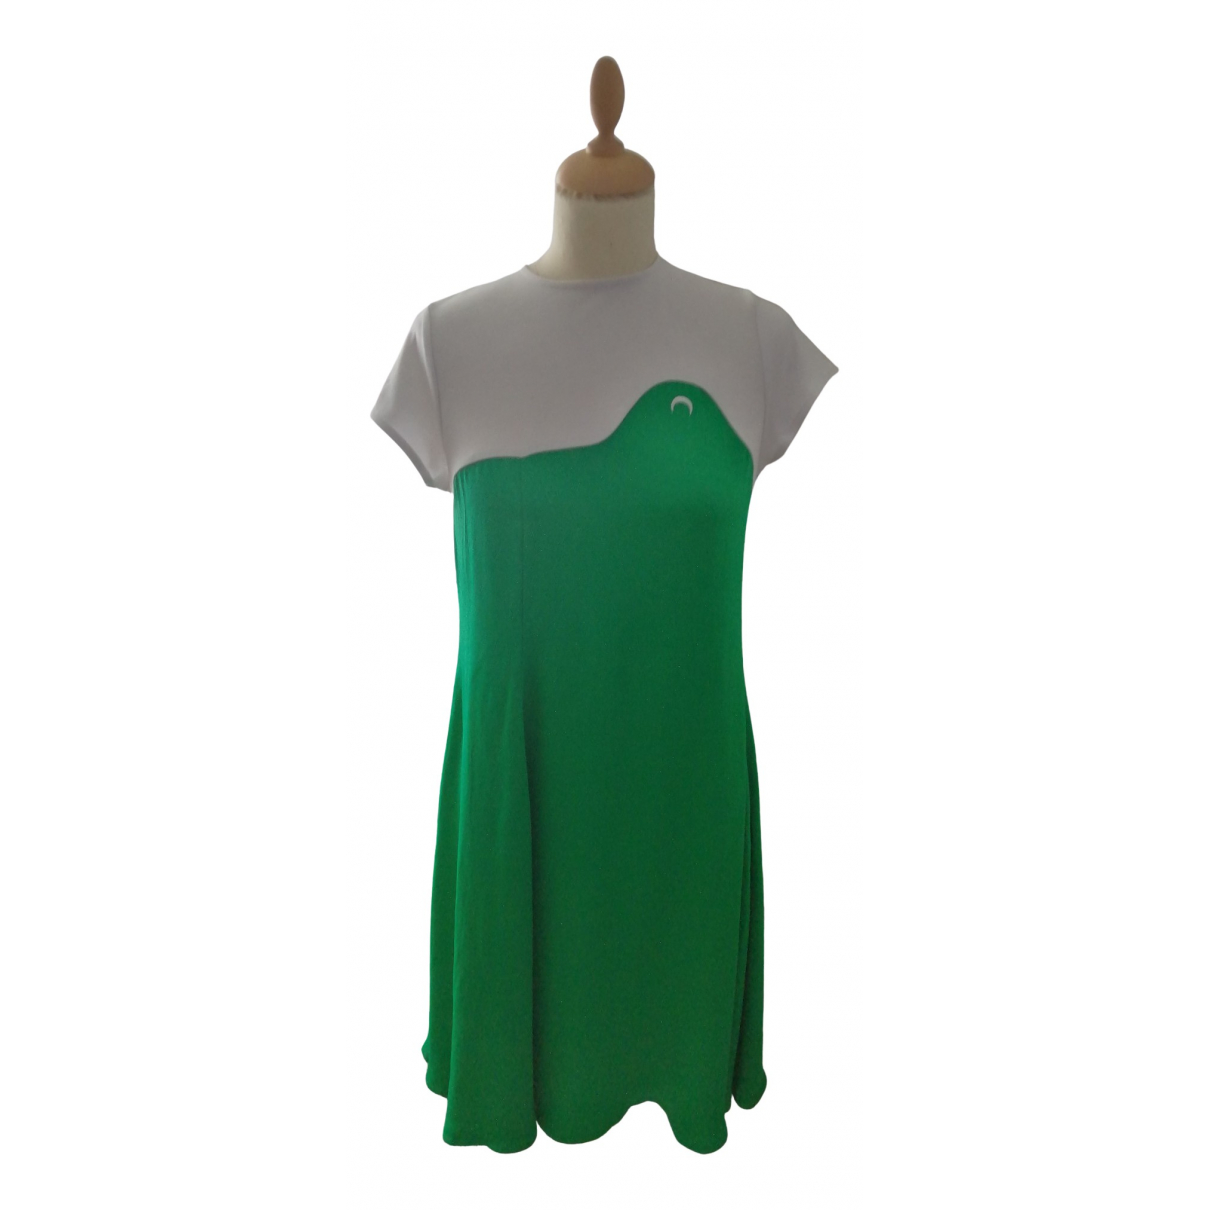 Marine Serre \N Green dress for Women 36 FR